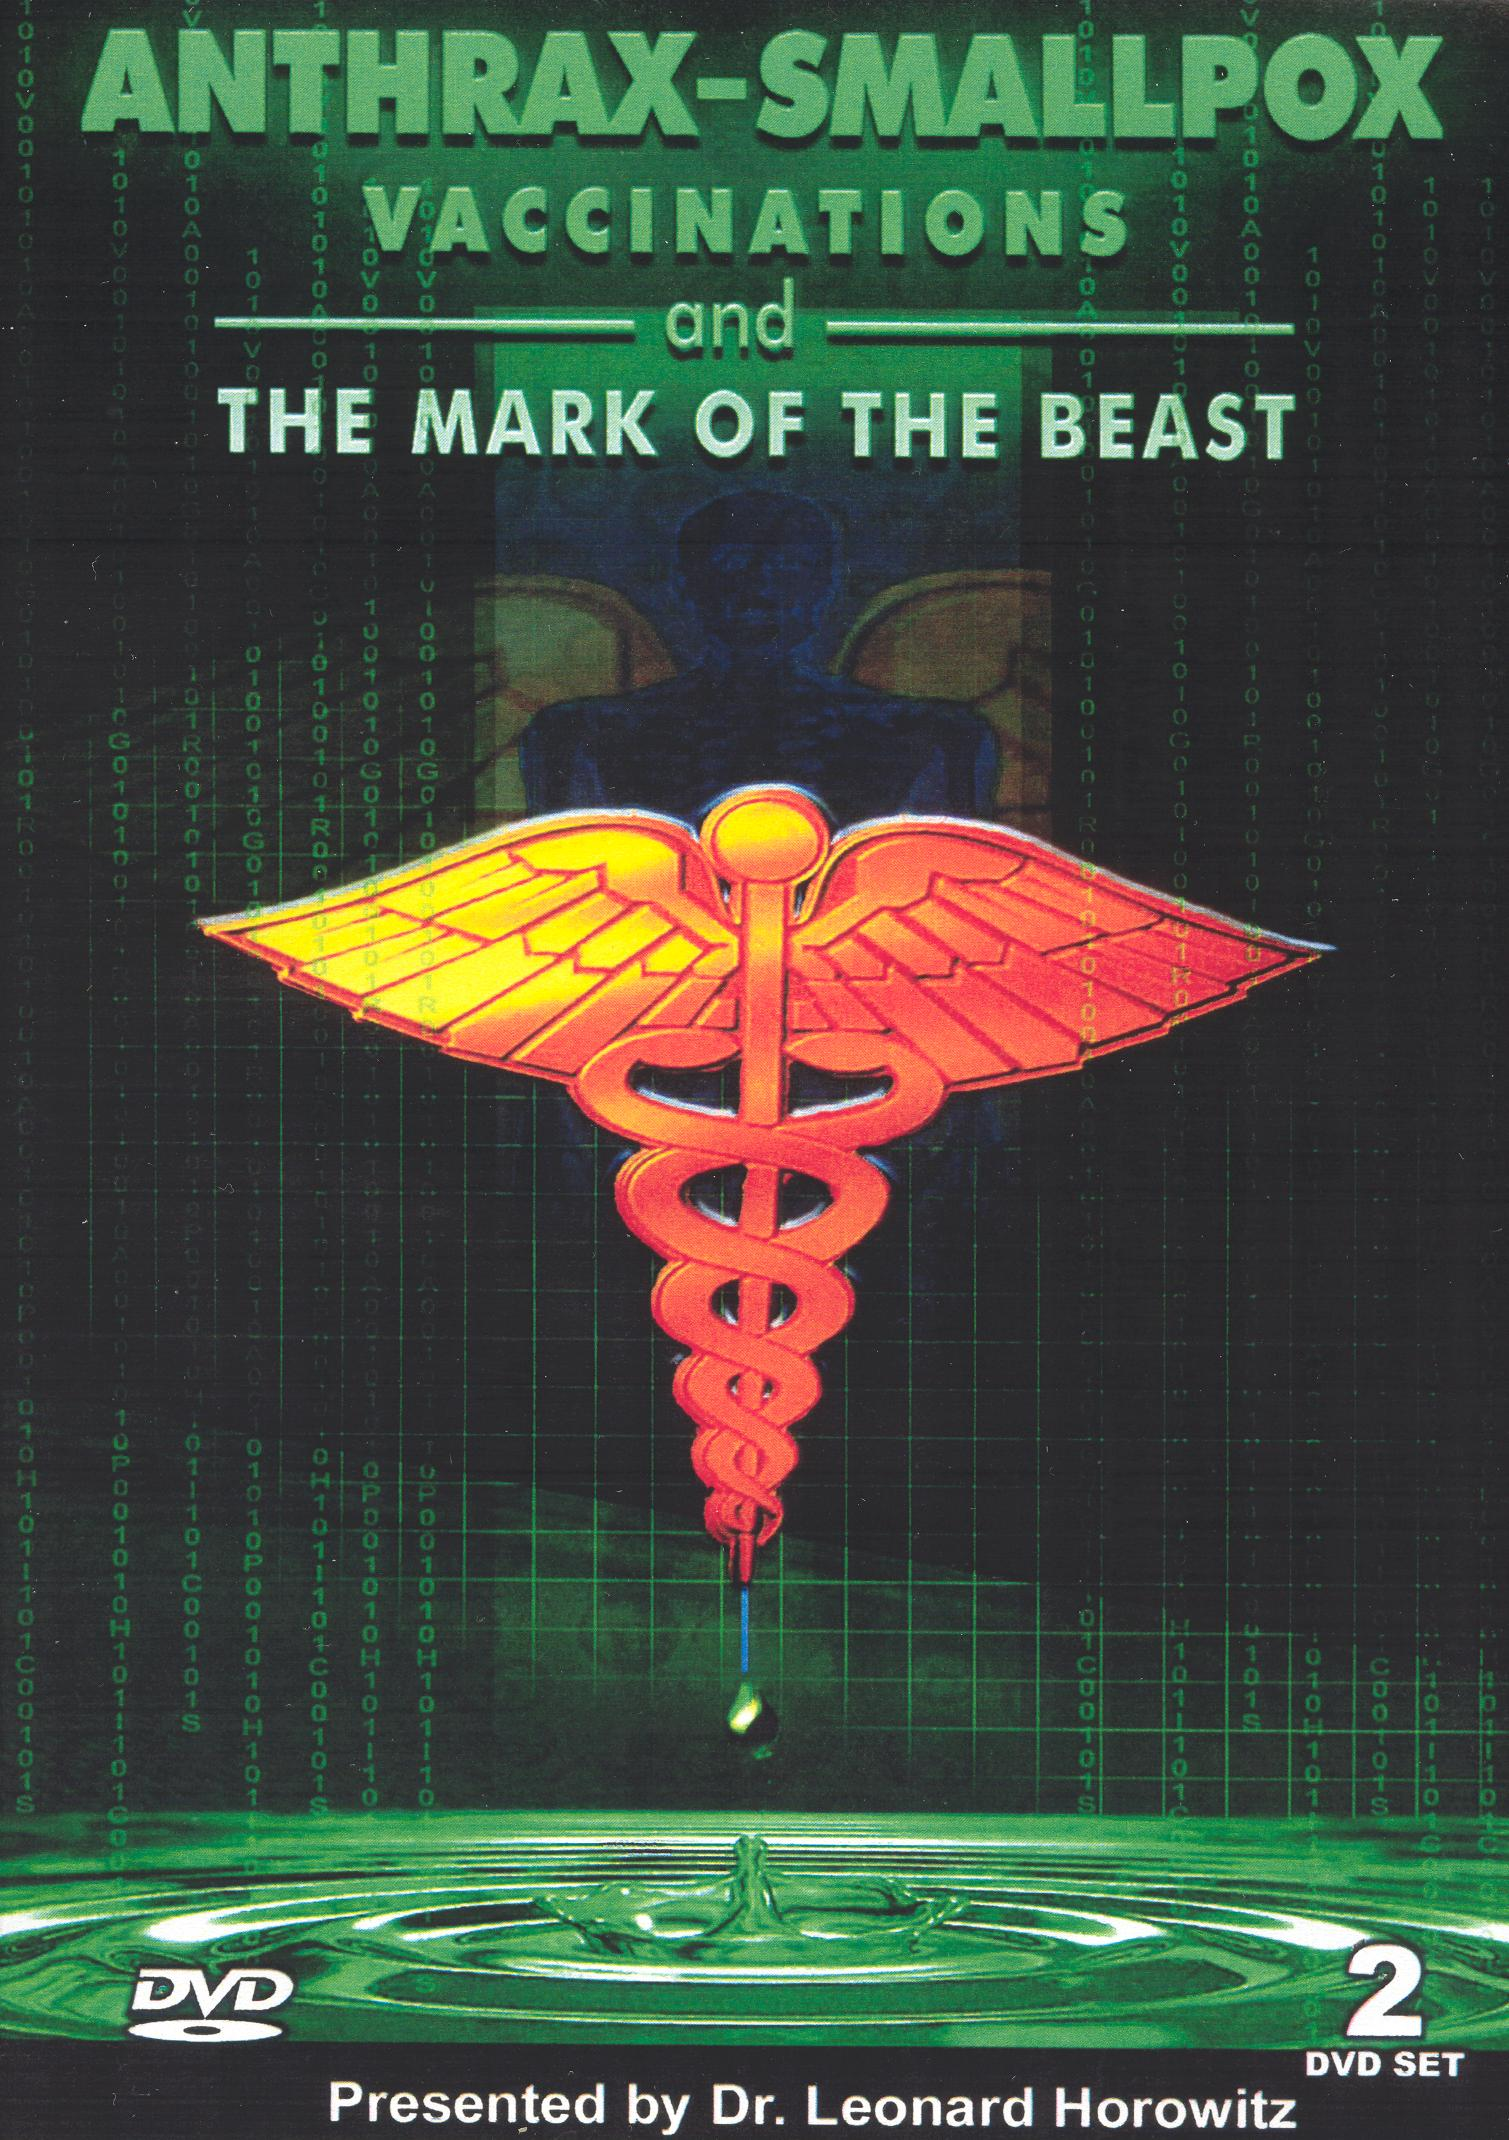 Len Horowitz: Anthrax, Smallpox, Vaccinations and the Mark of the Beast!